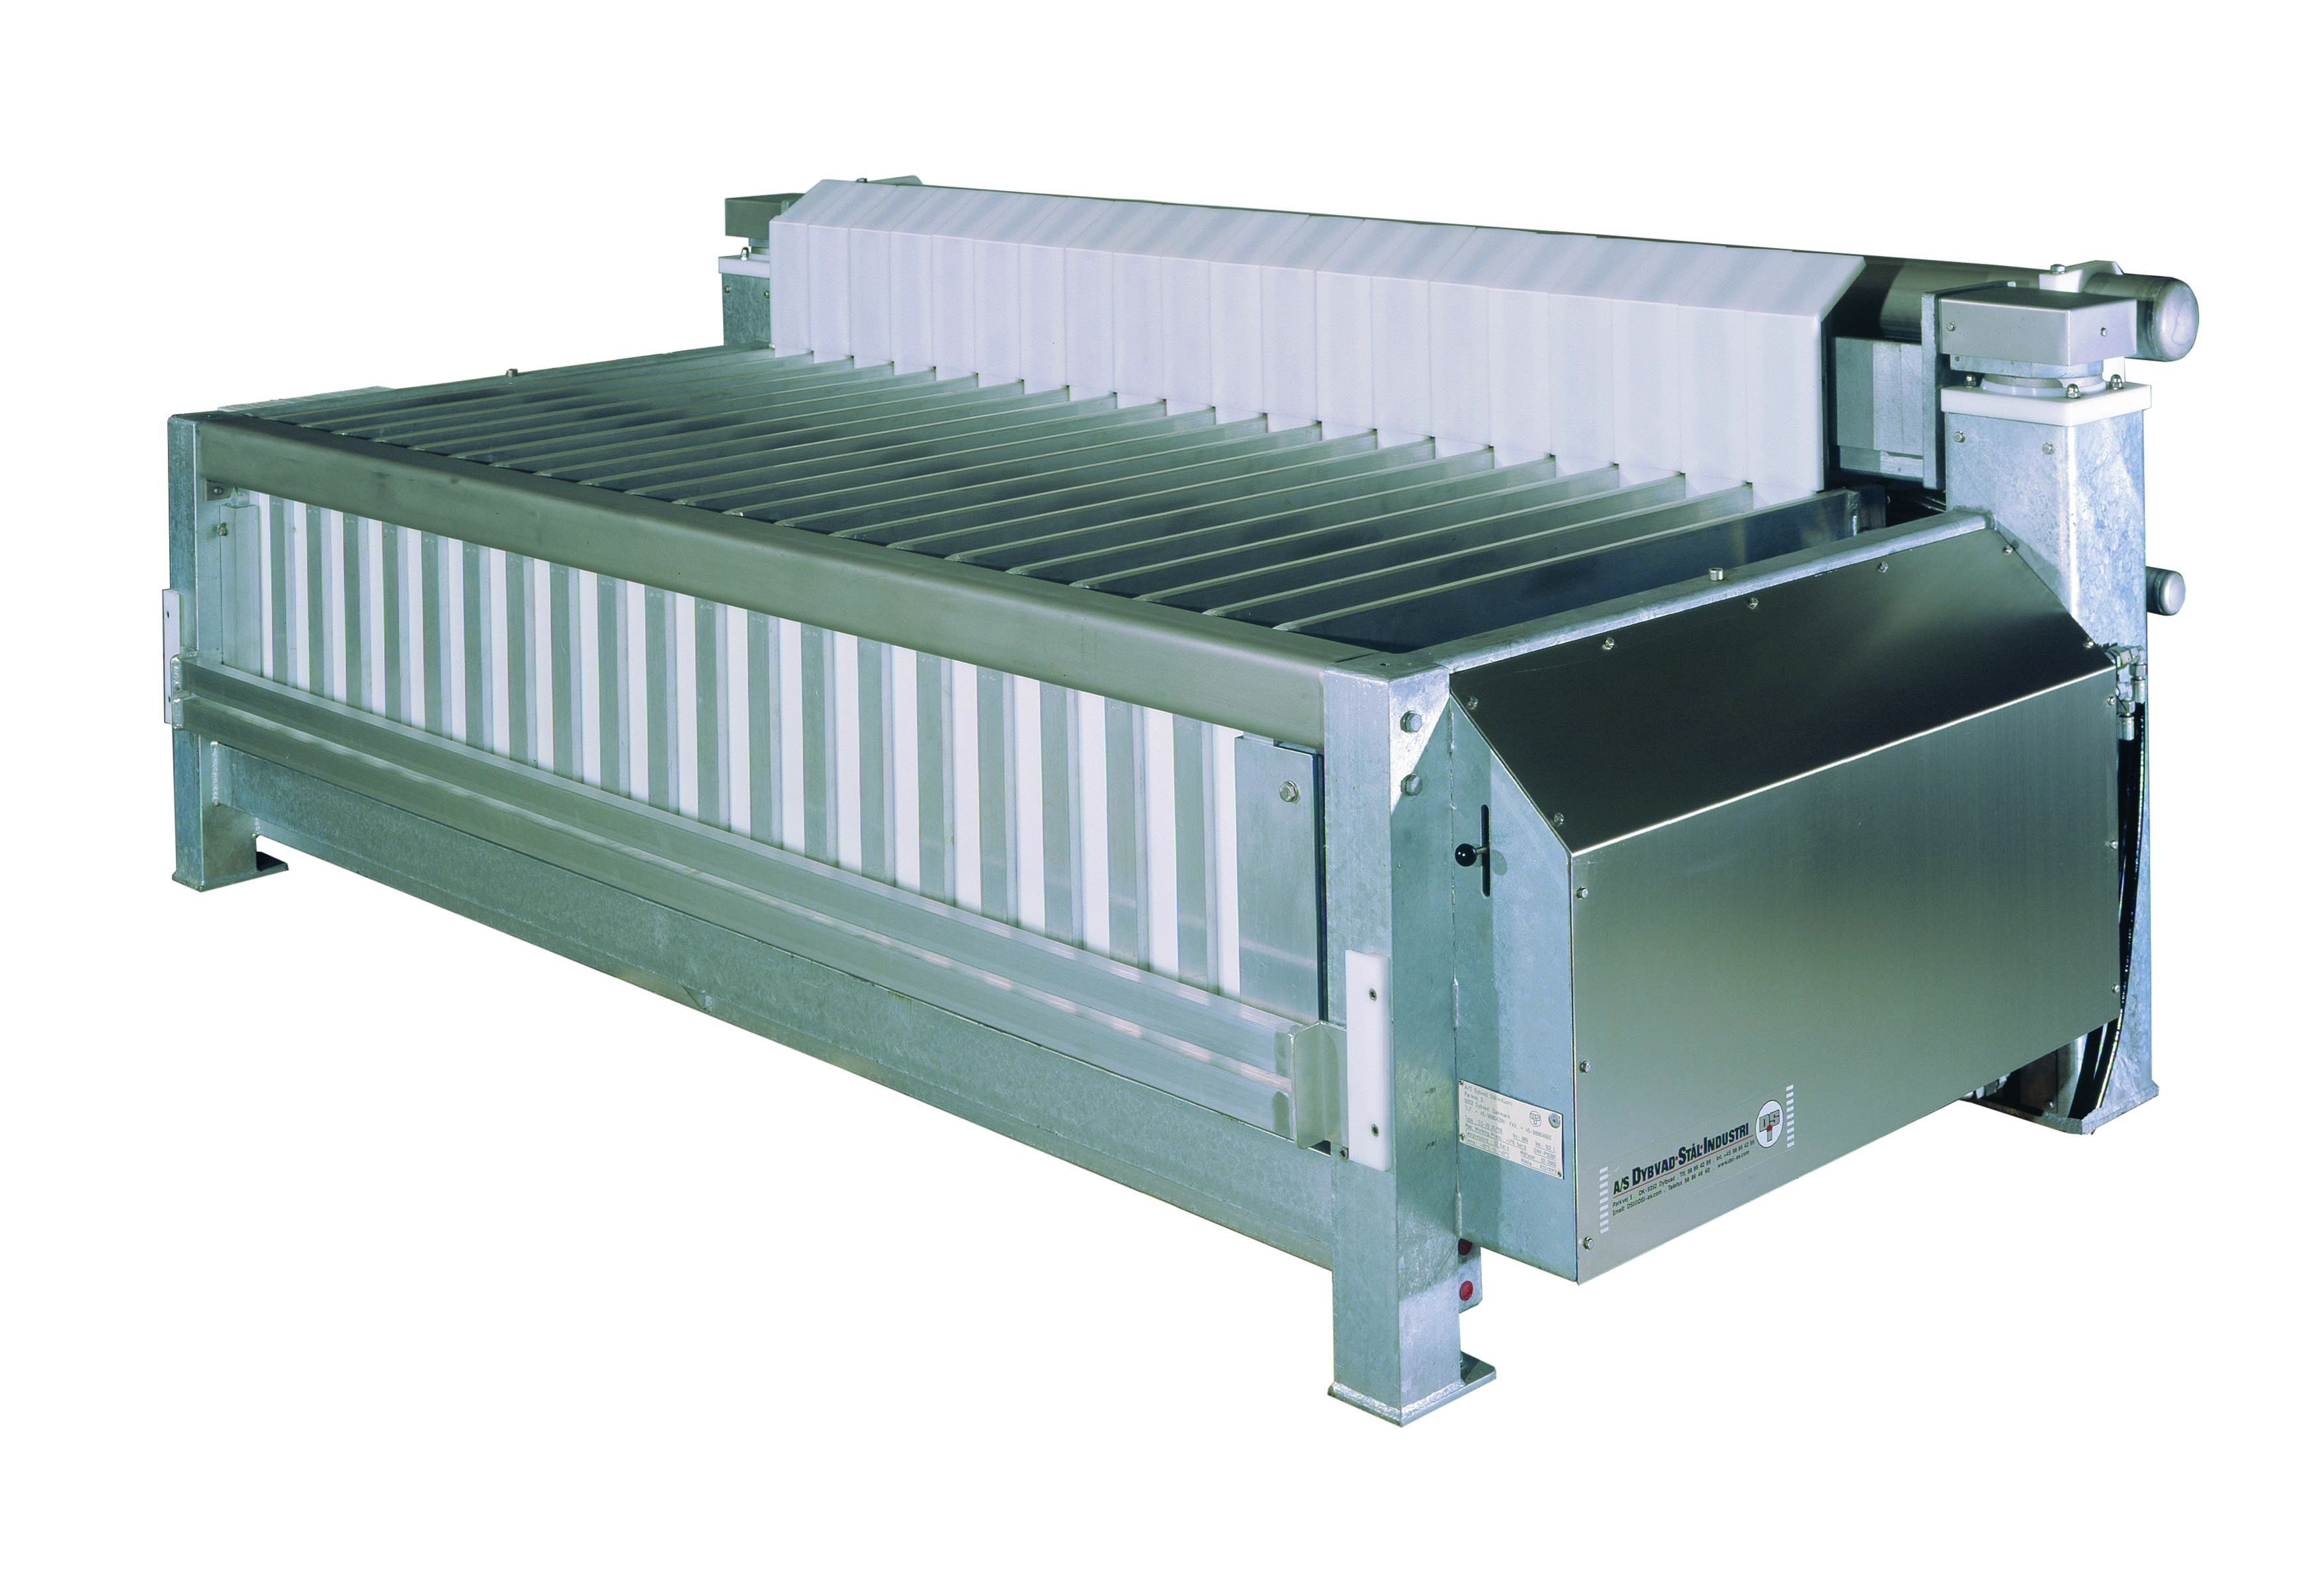 DSI - Vertical Plate Freezer